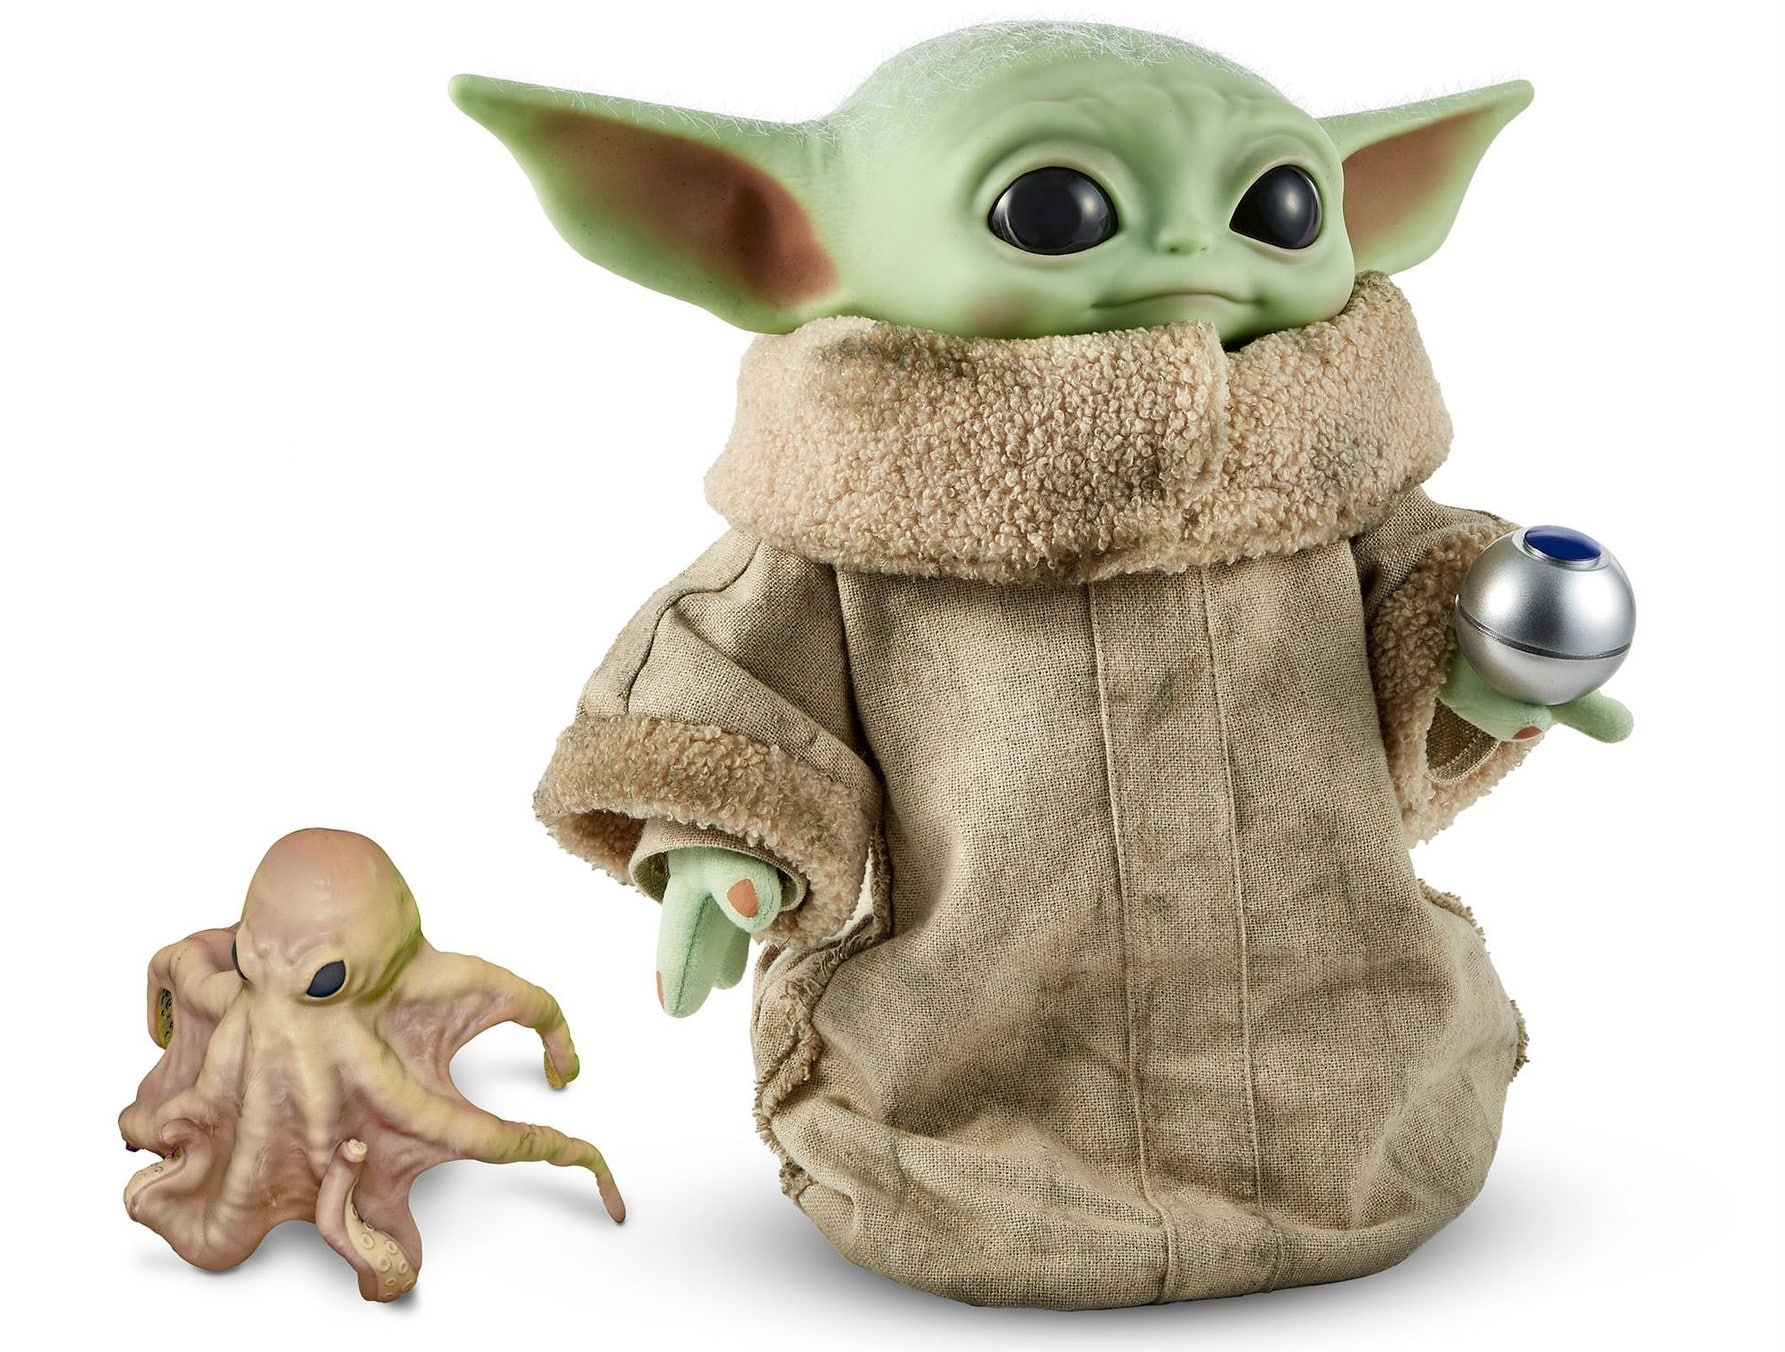 Baby Yoda gets a collector's edition plush with hover pram from Mattel 14